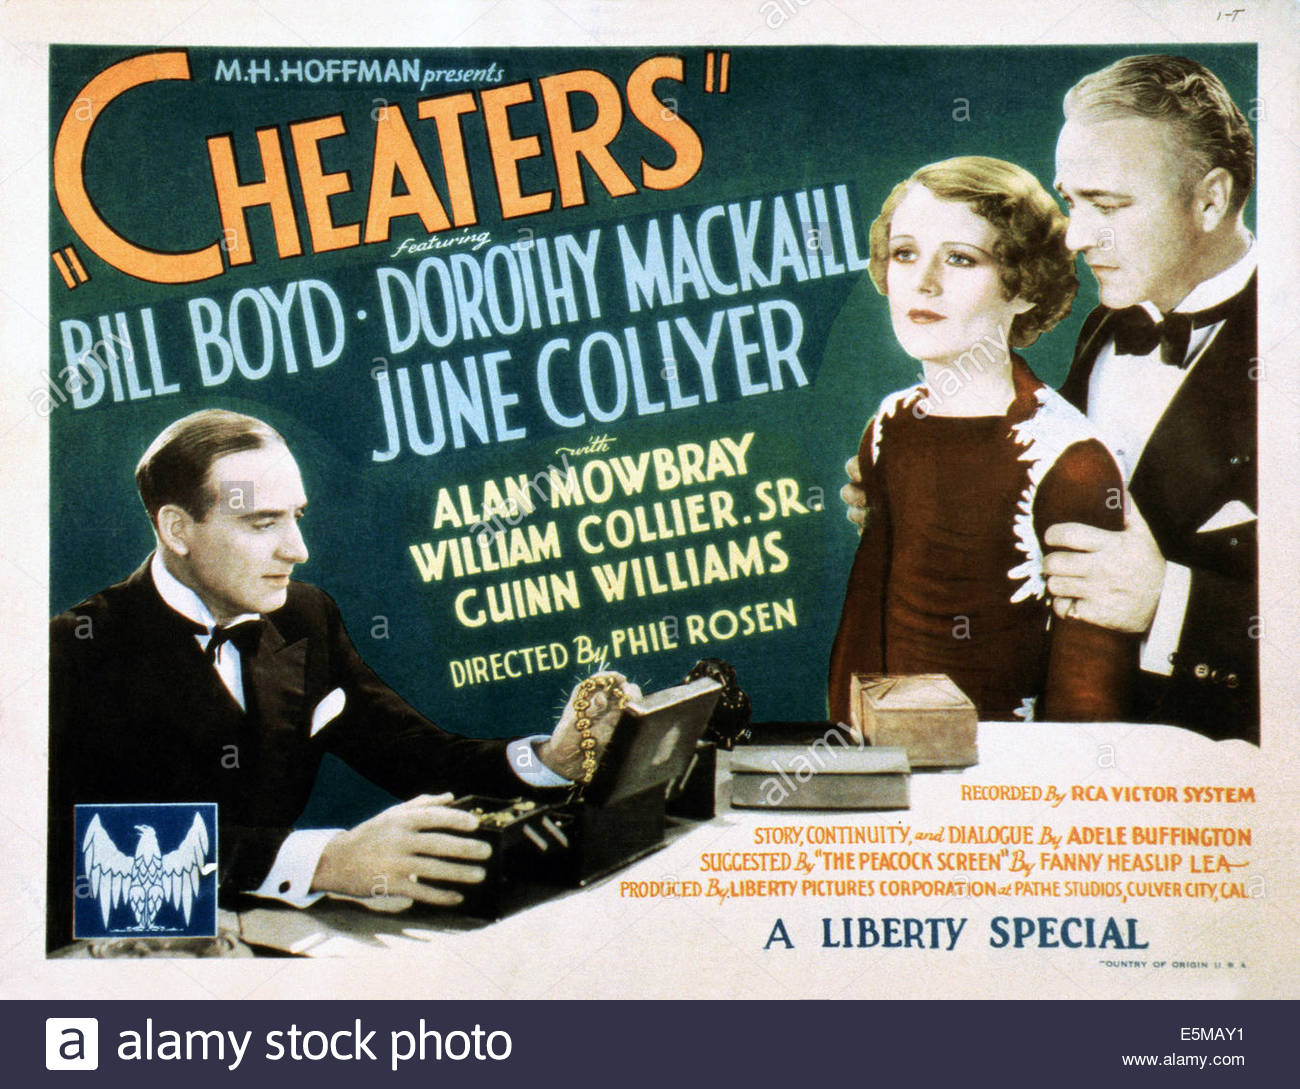 cheaters-from-left-alan-mowbray-june-collyer-william-boyd-1934-e5may1.